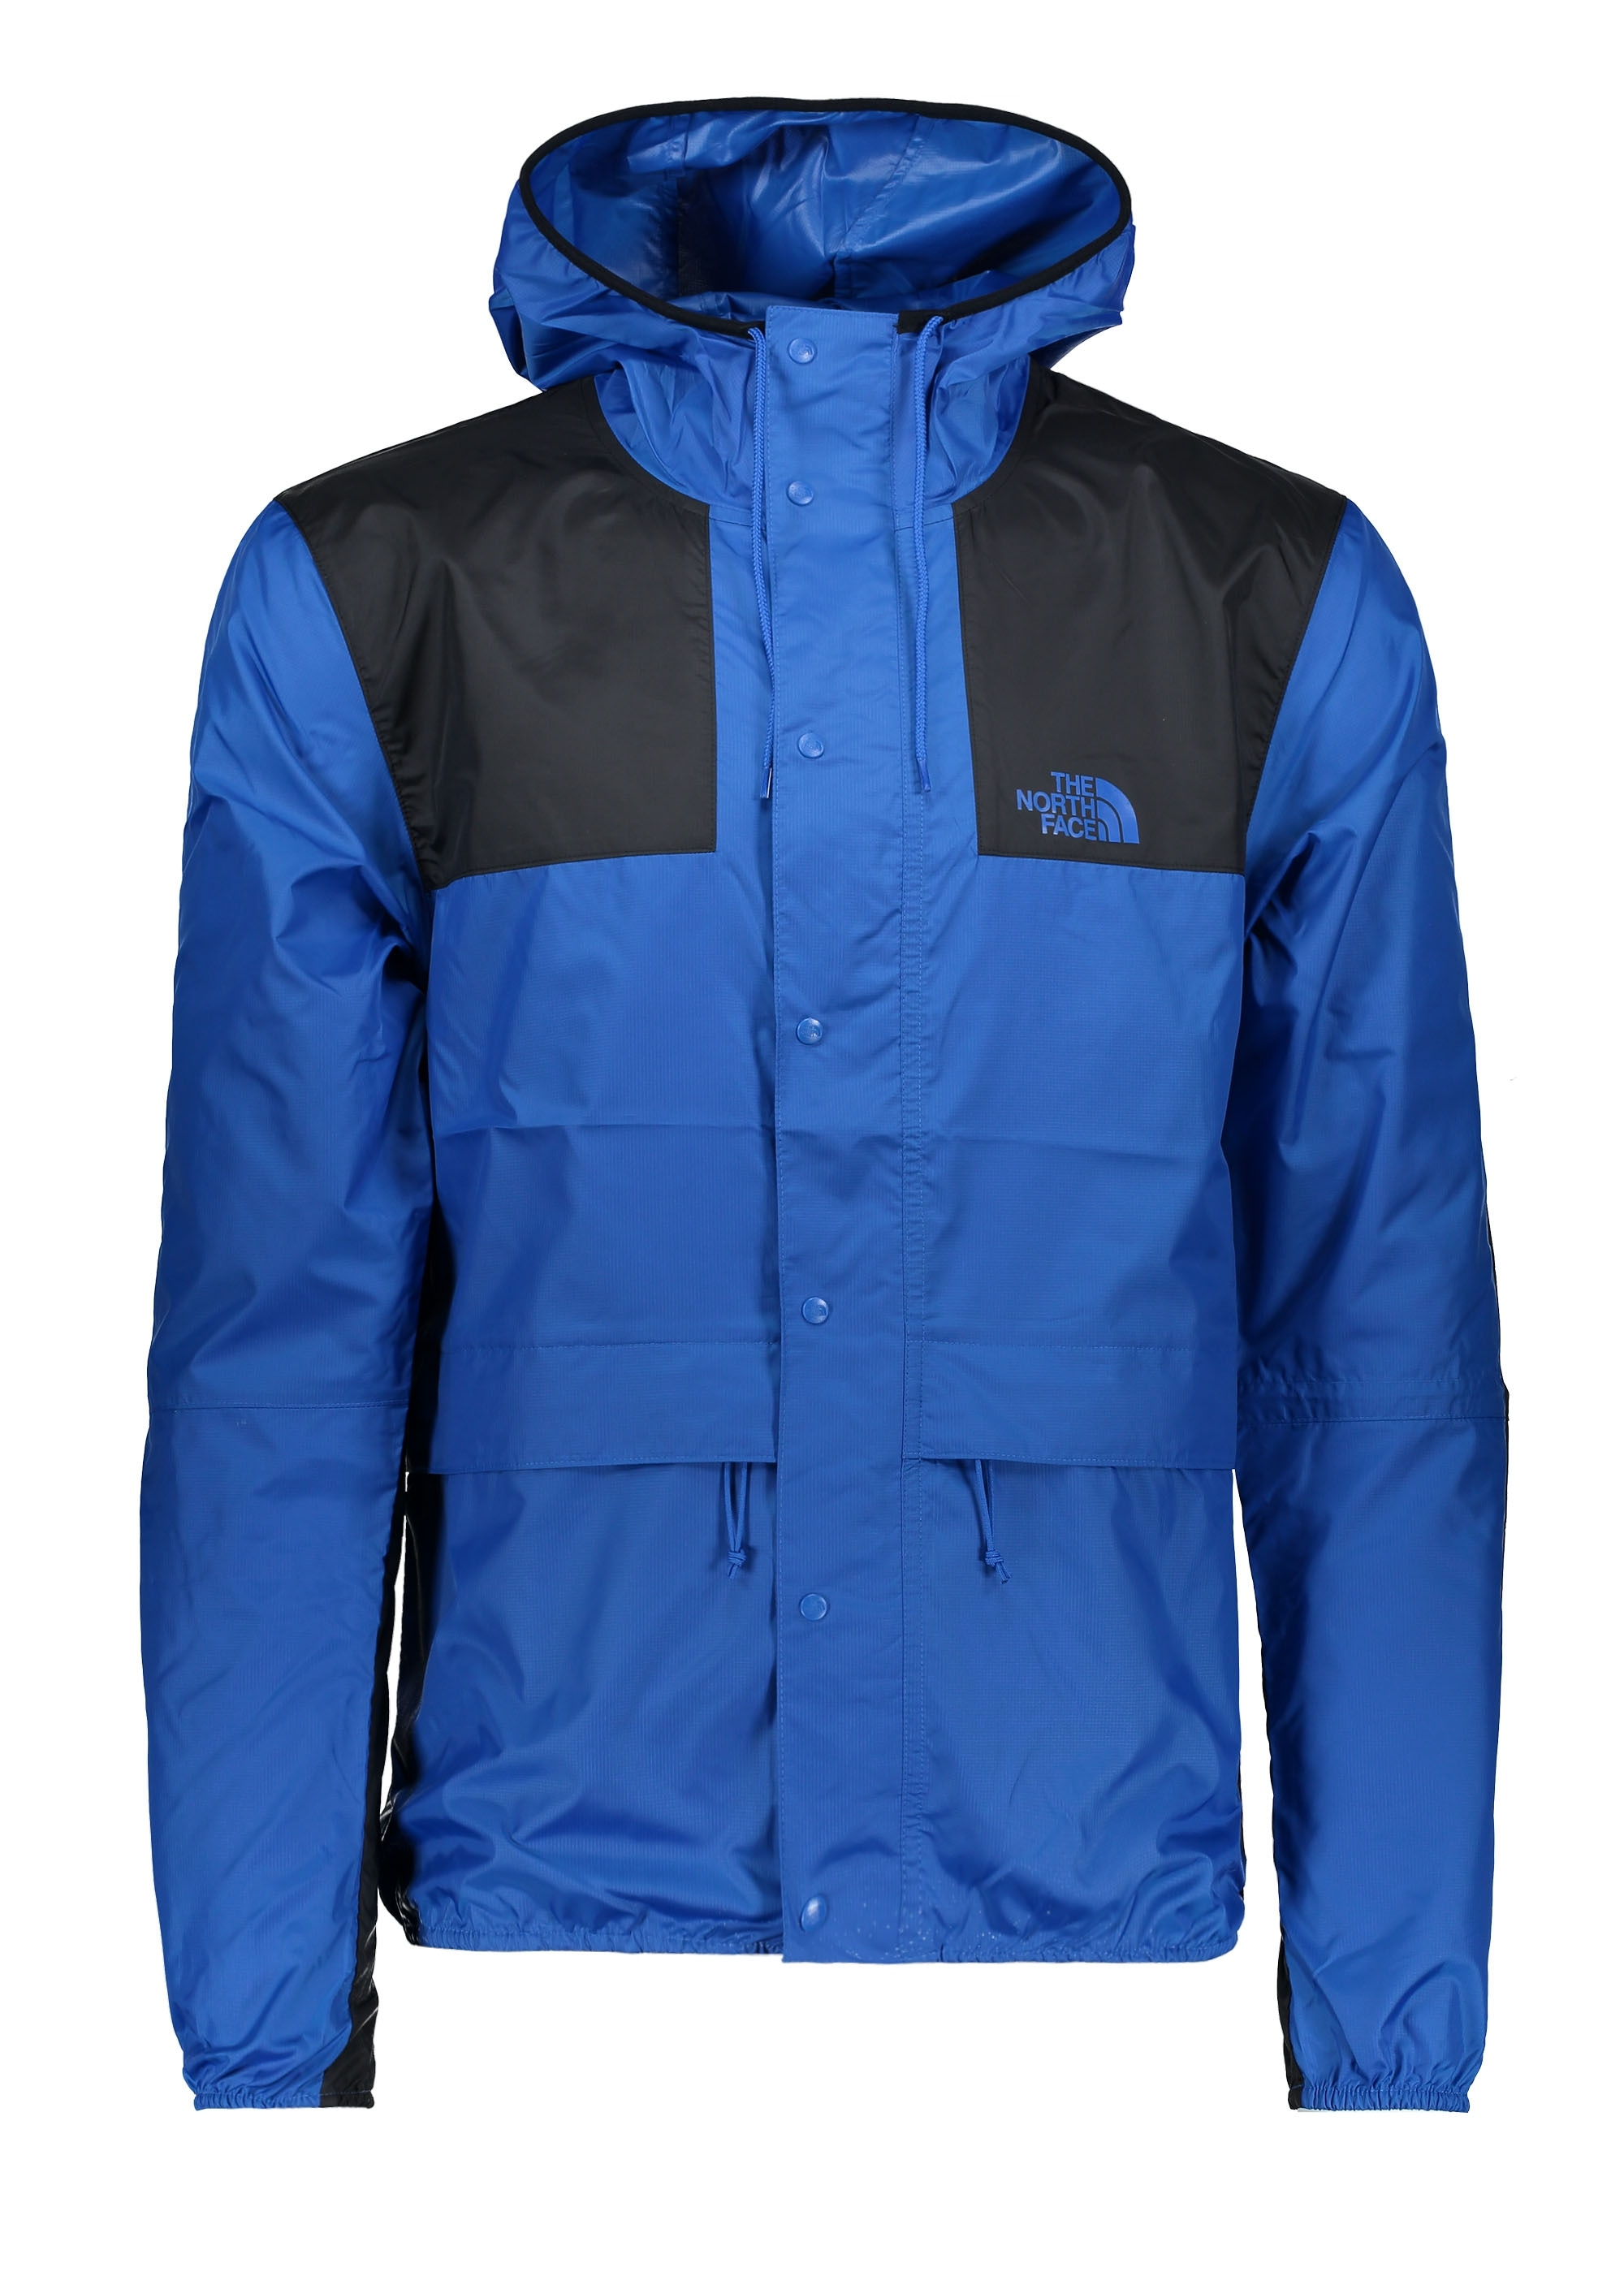 The North Face 1985 Mountain Jacket - Turkish Sea - Jackets from ... 676d9f0a2e83